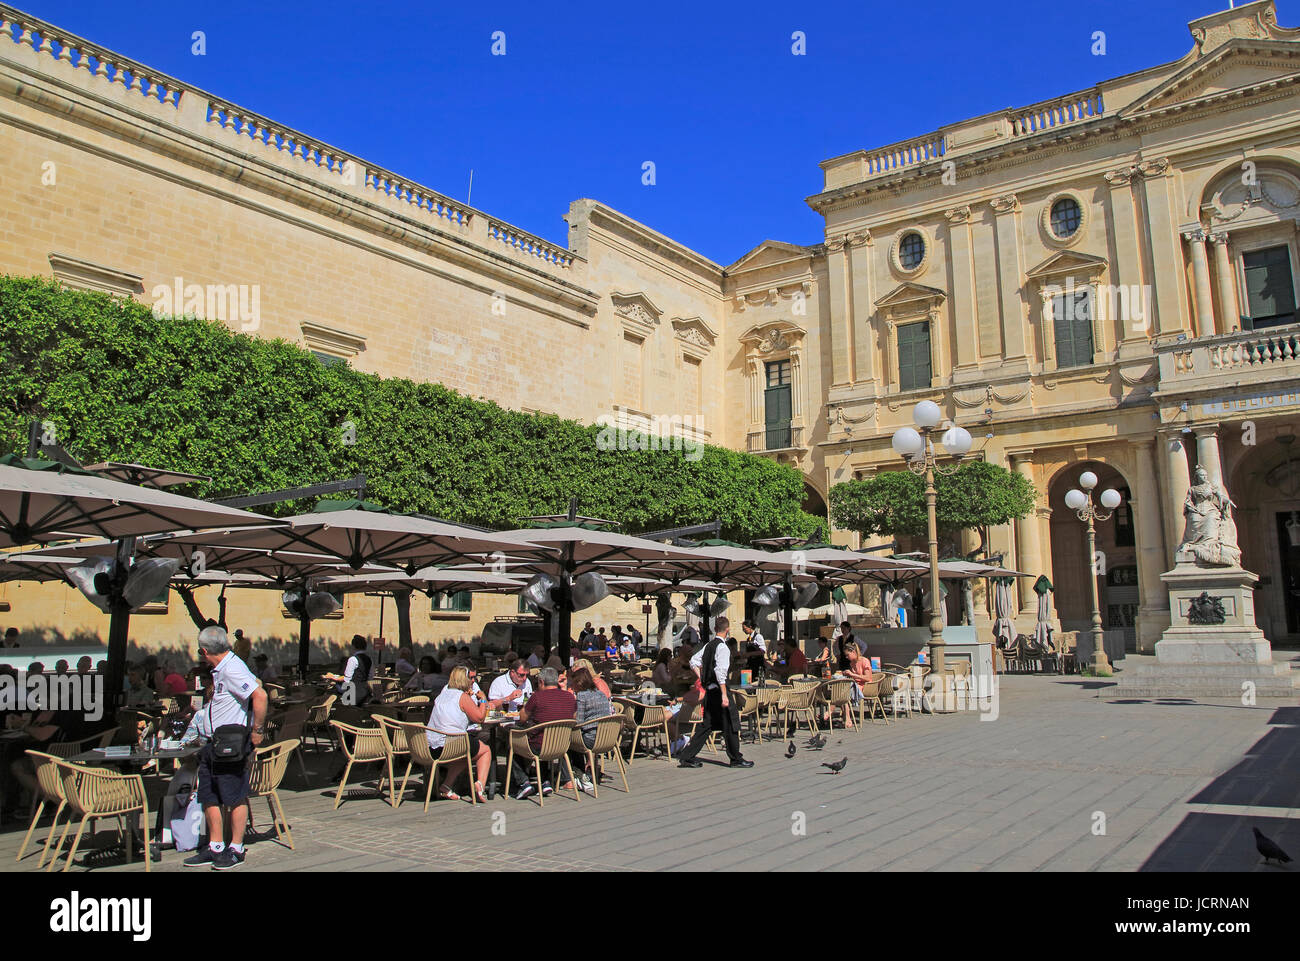 People at cafe tables next to National Library building, Republic Square, Valletta, Malta - Stock Image